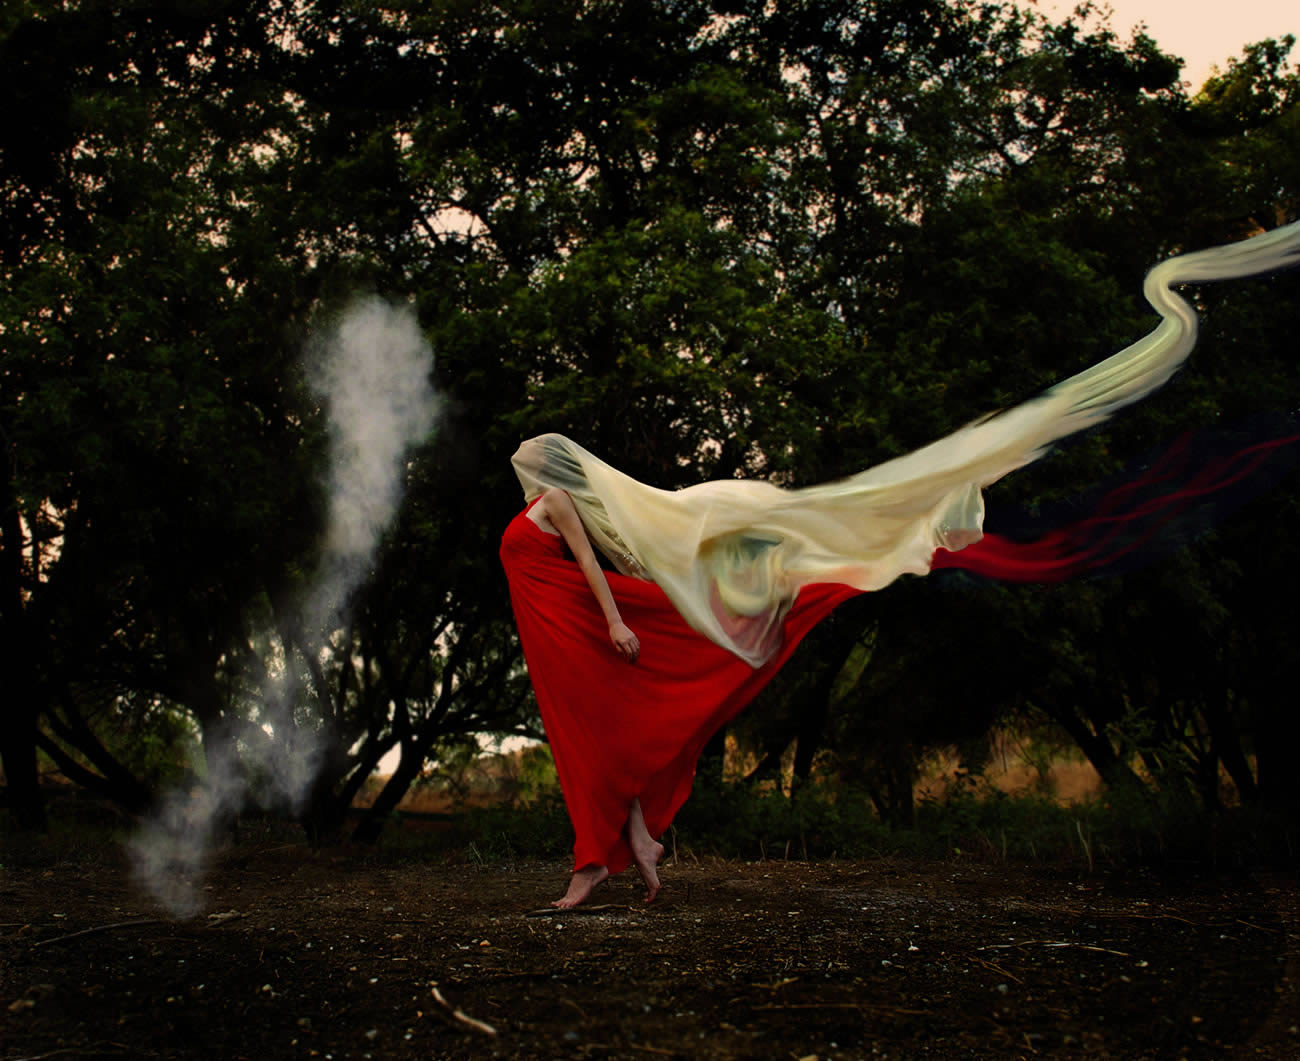 white cloth on hand and red dress, photography by trini schultz